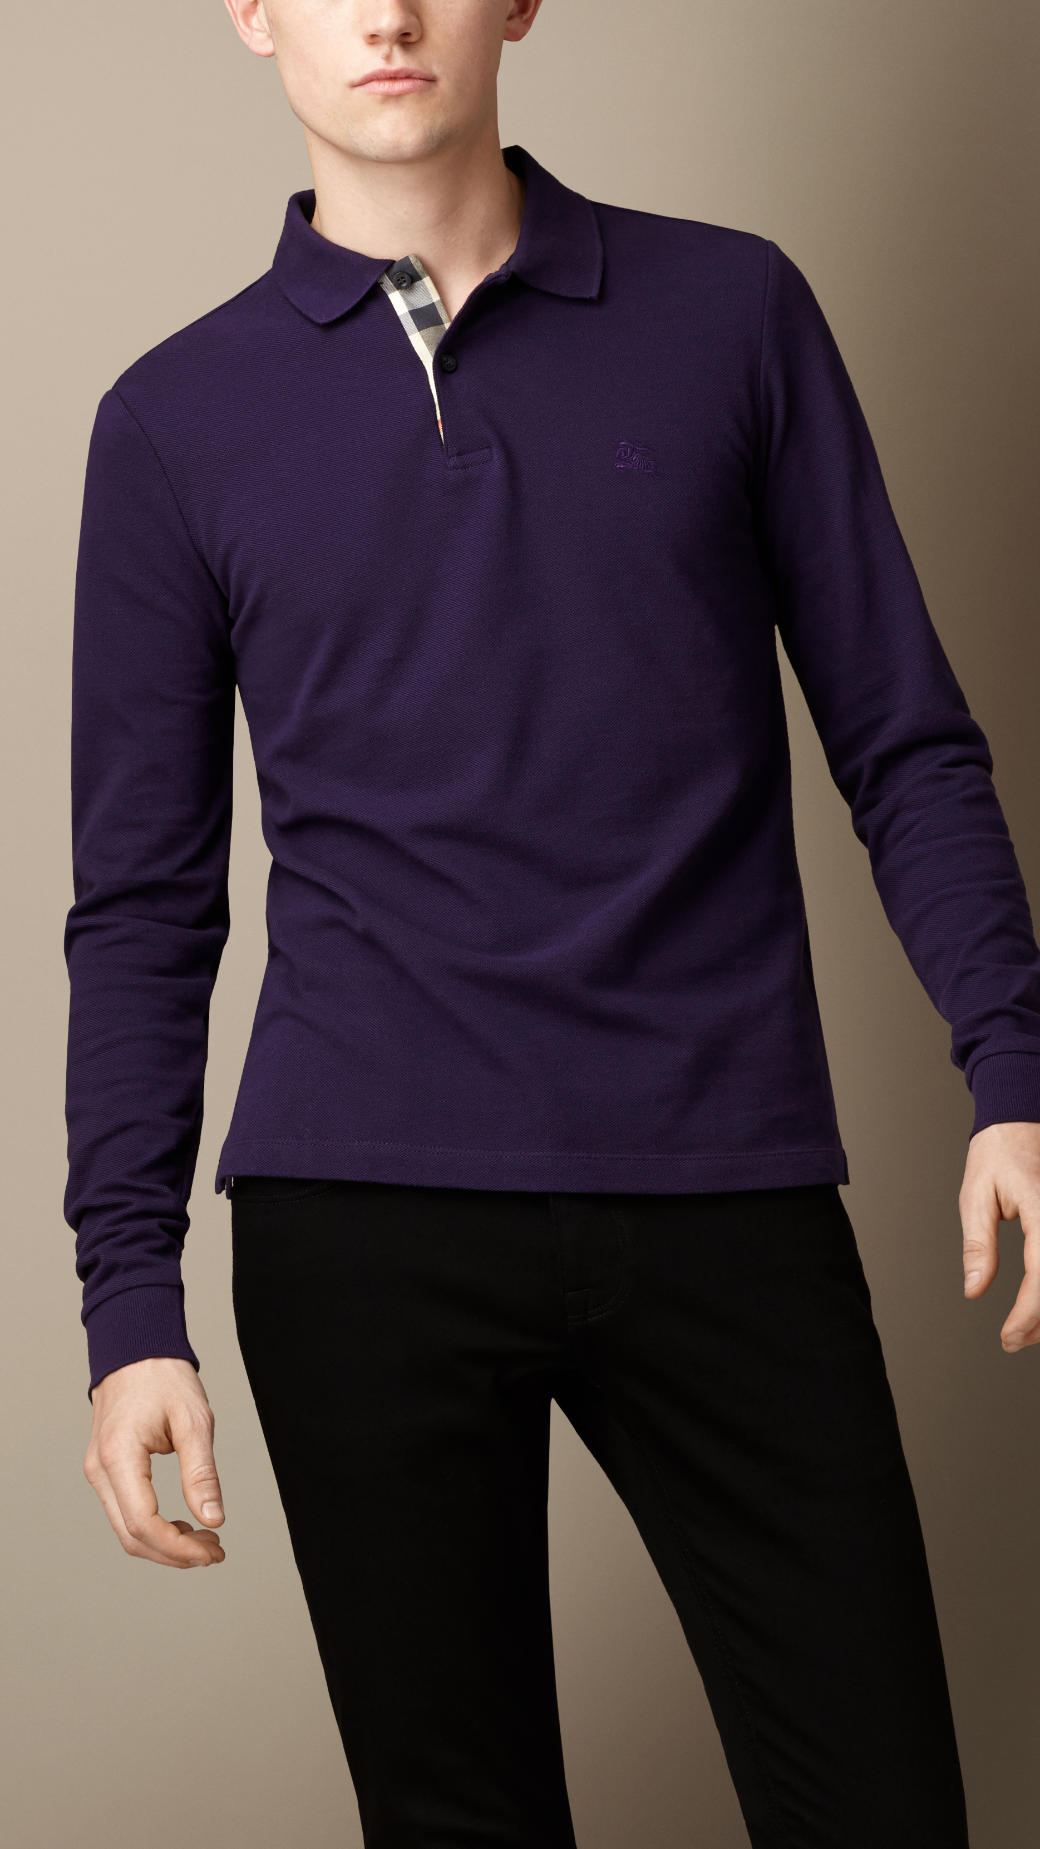 Lyst - Burberry Long Sleeve Polo Shirt in Purple for Men